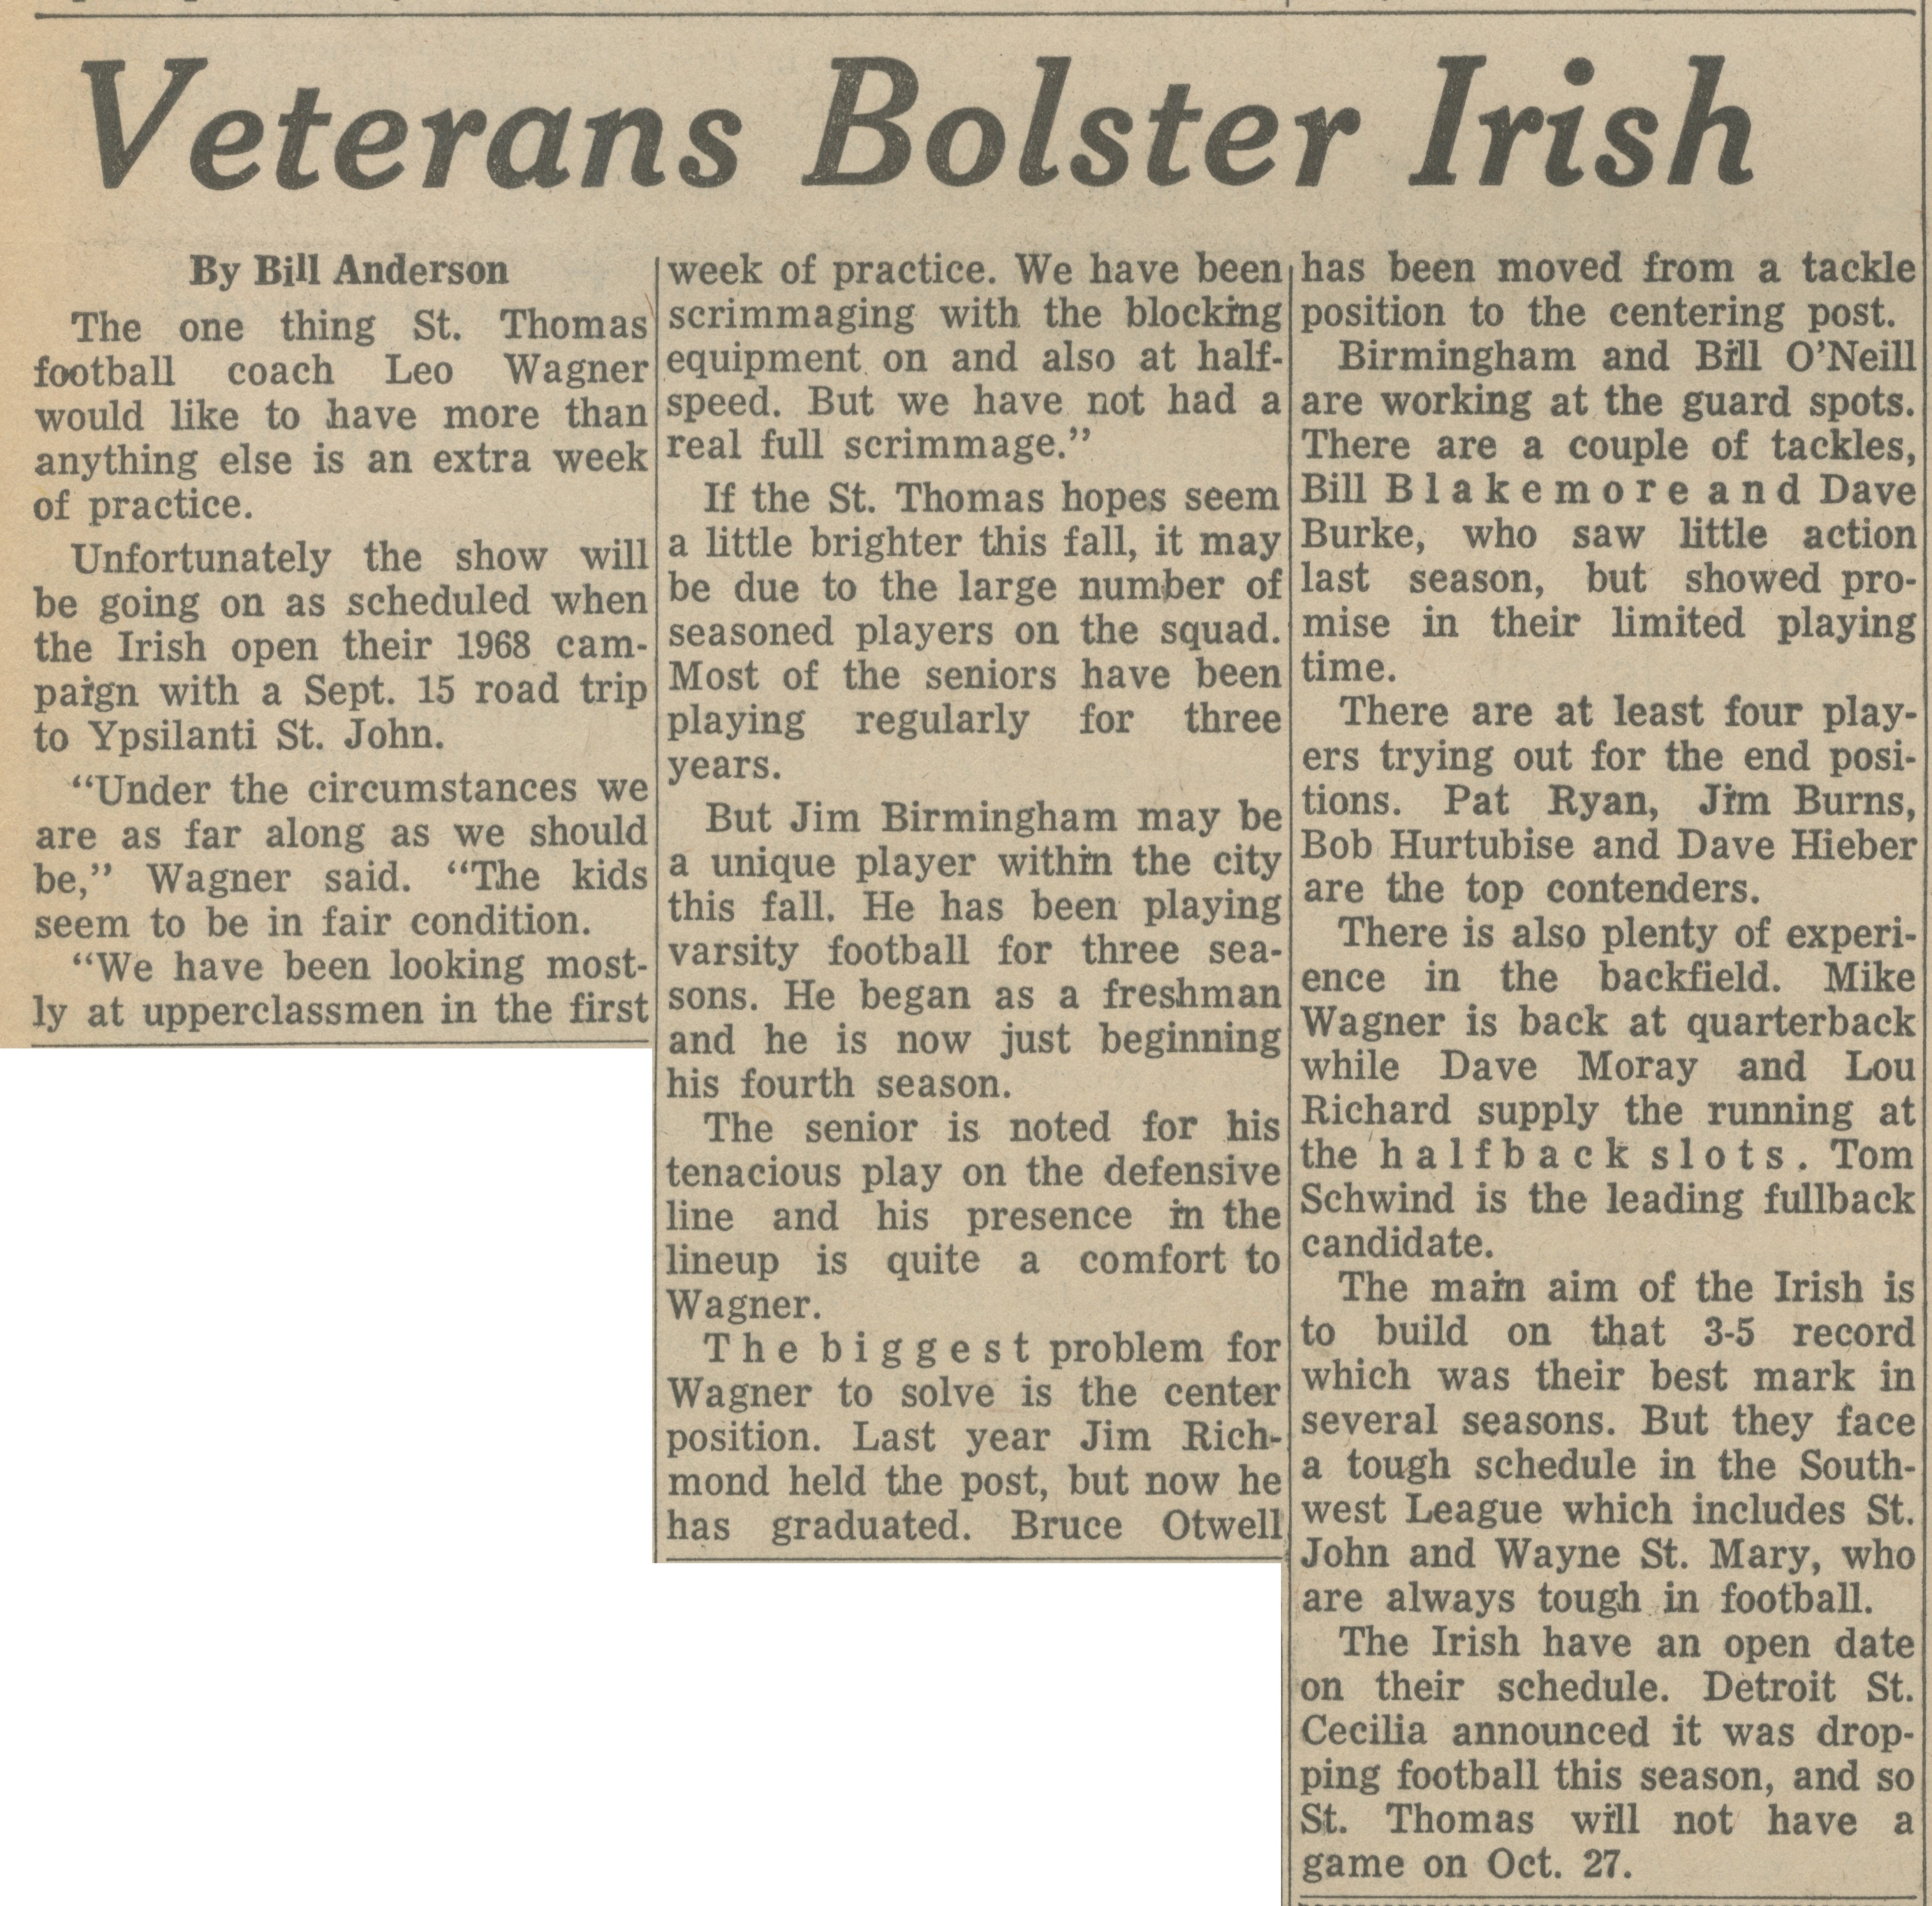 Veterans Bolster Irish image